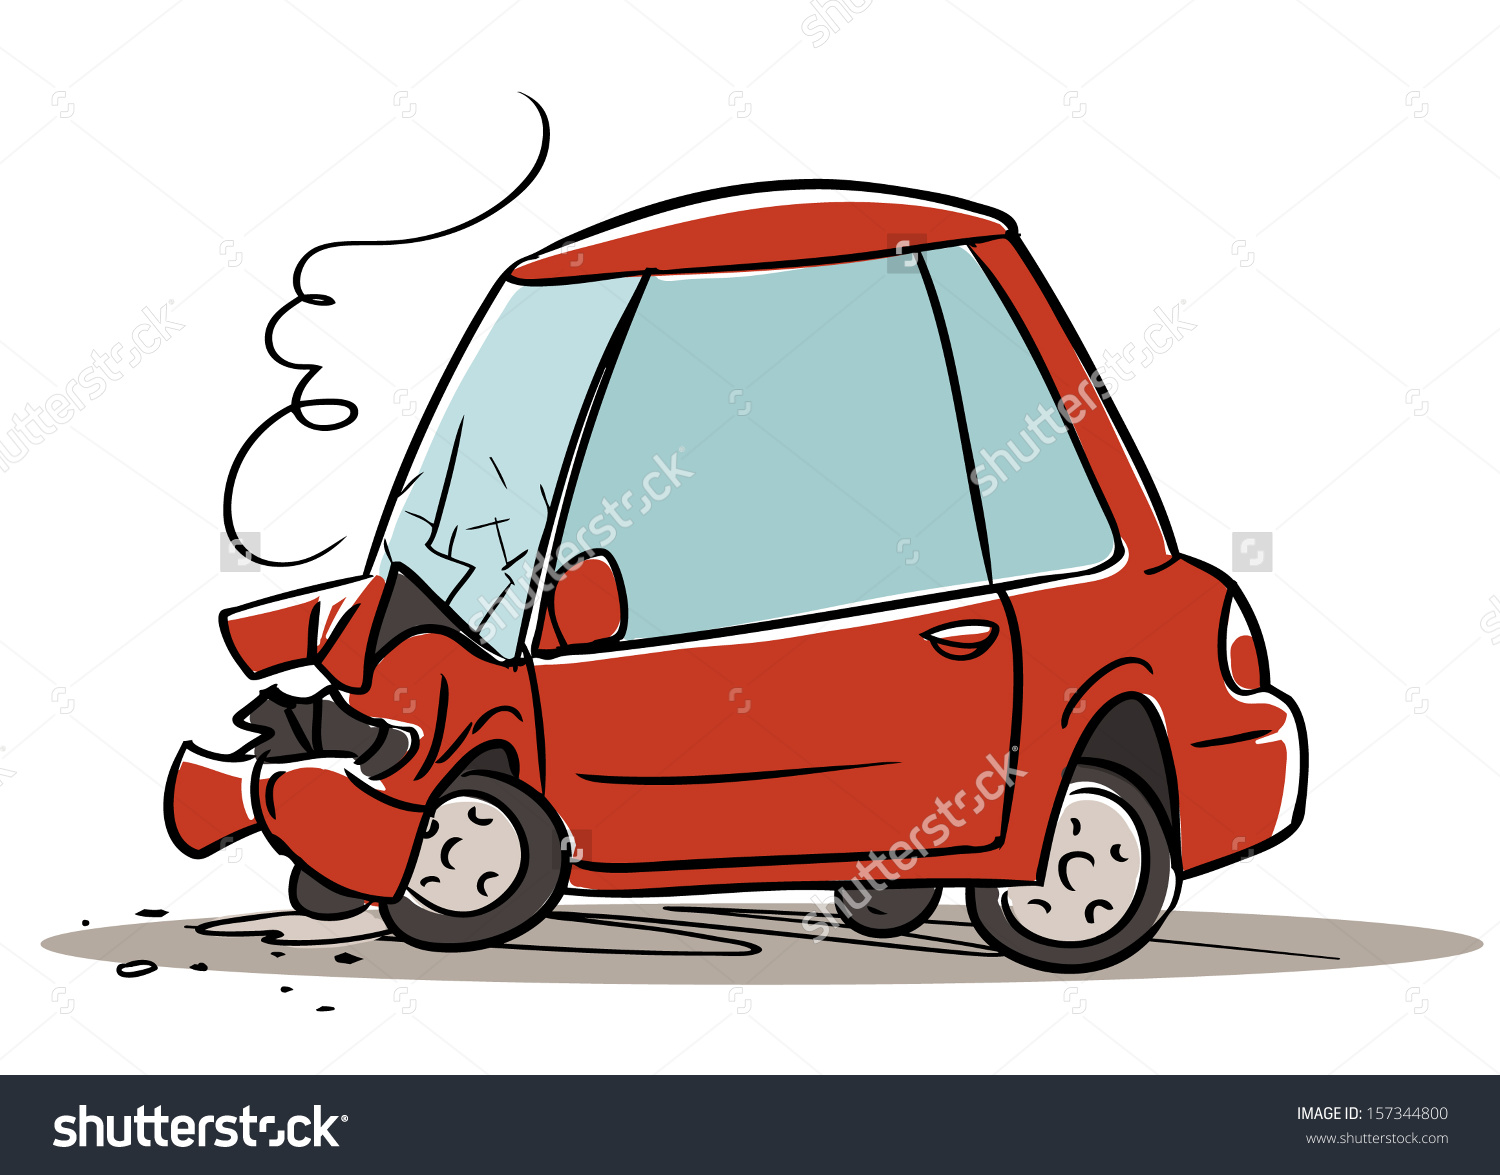 Gallery For > Junk Car Clipart.